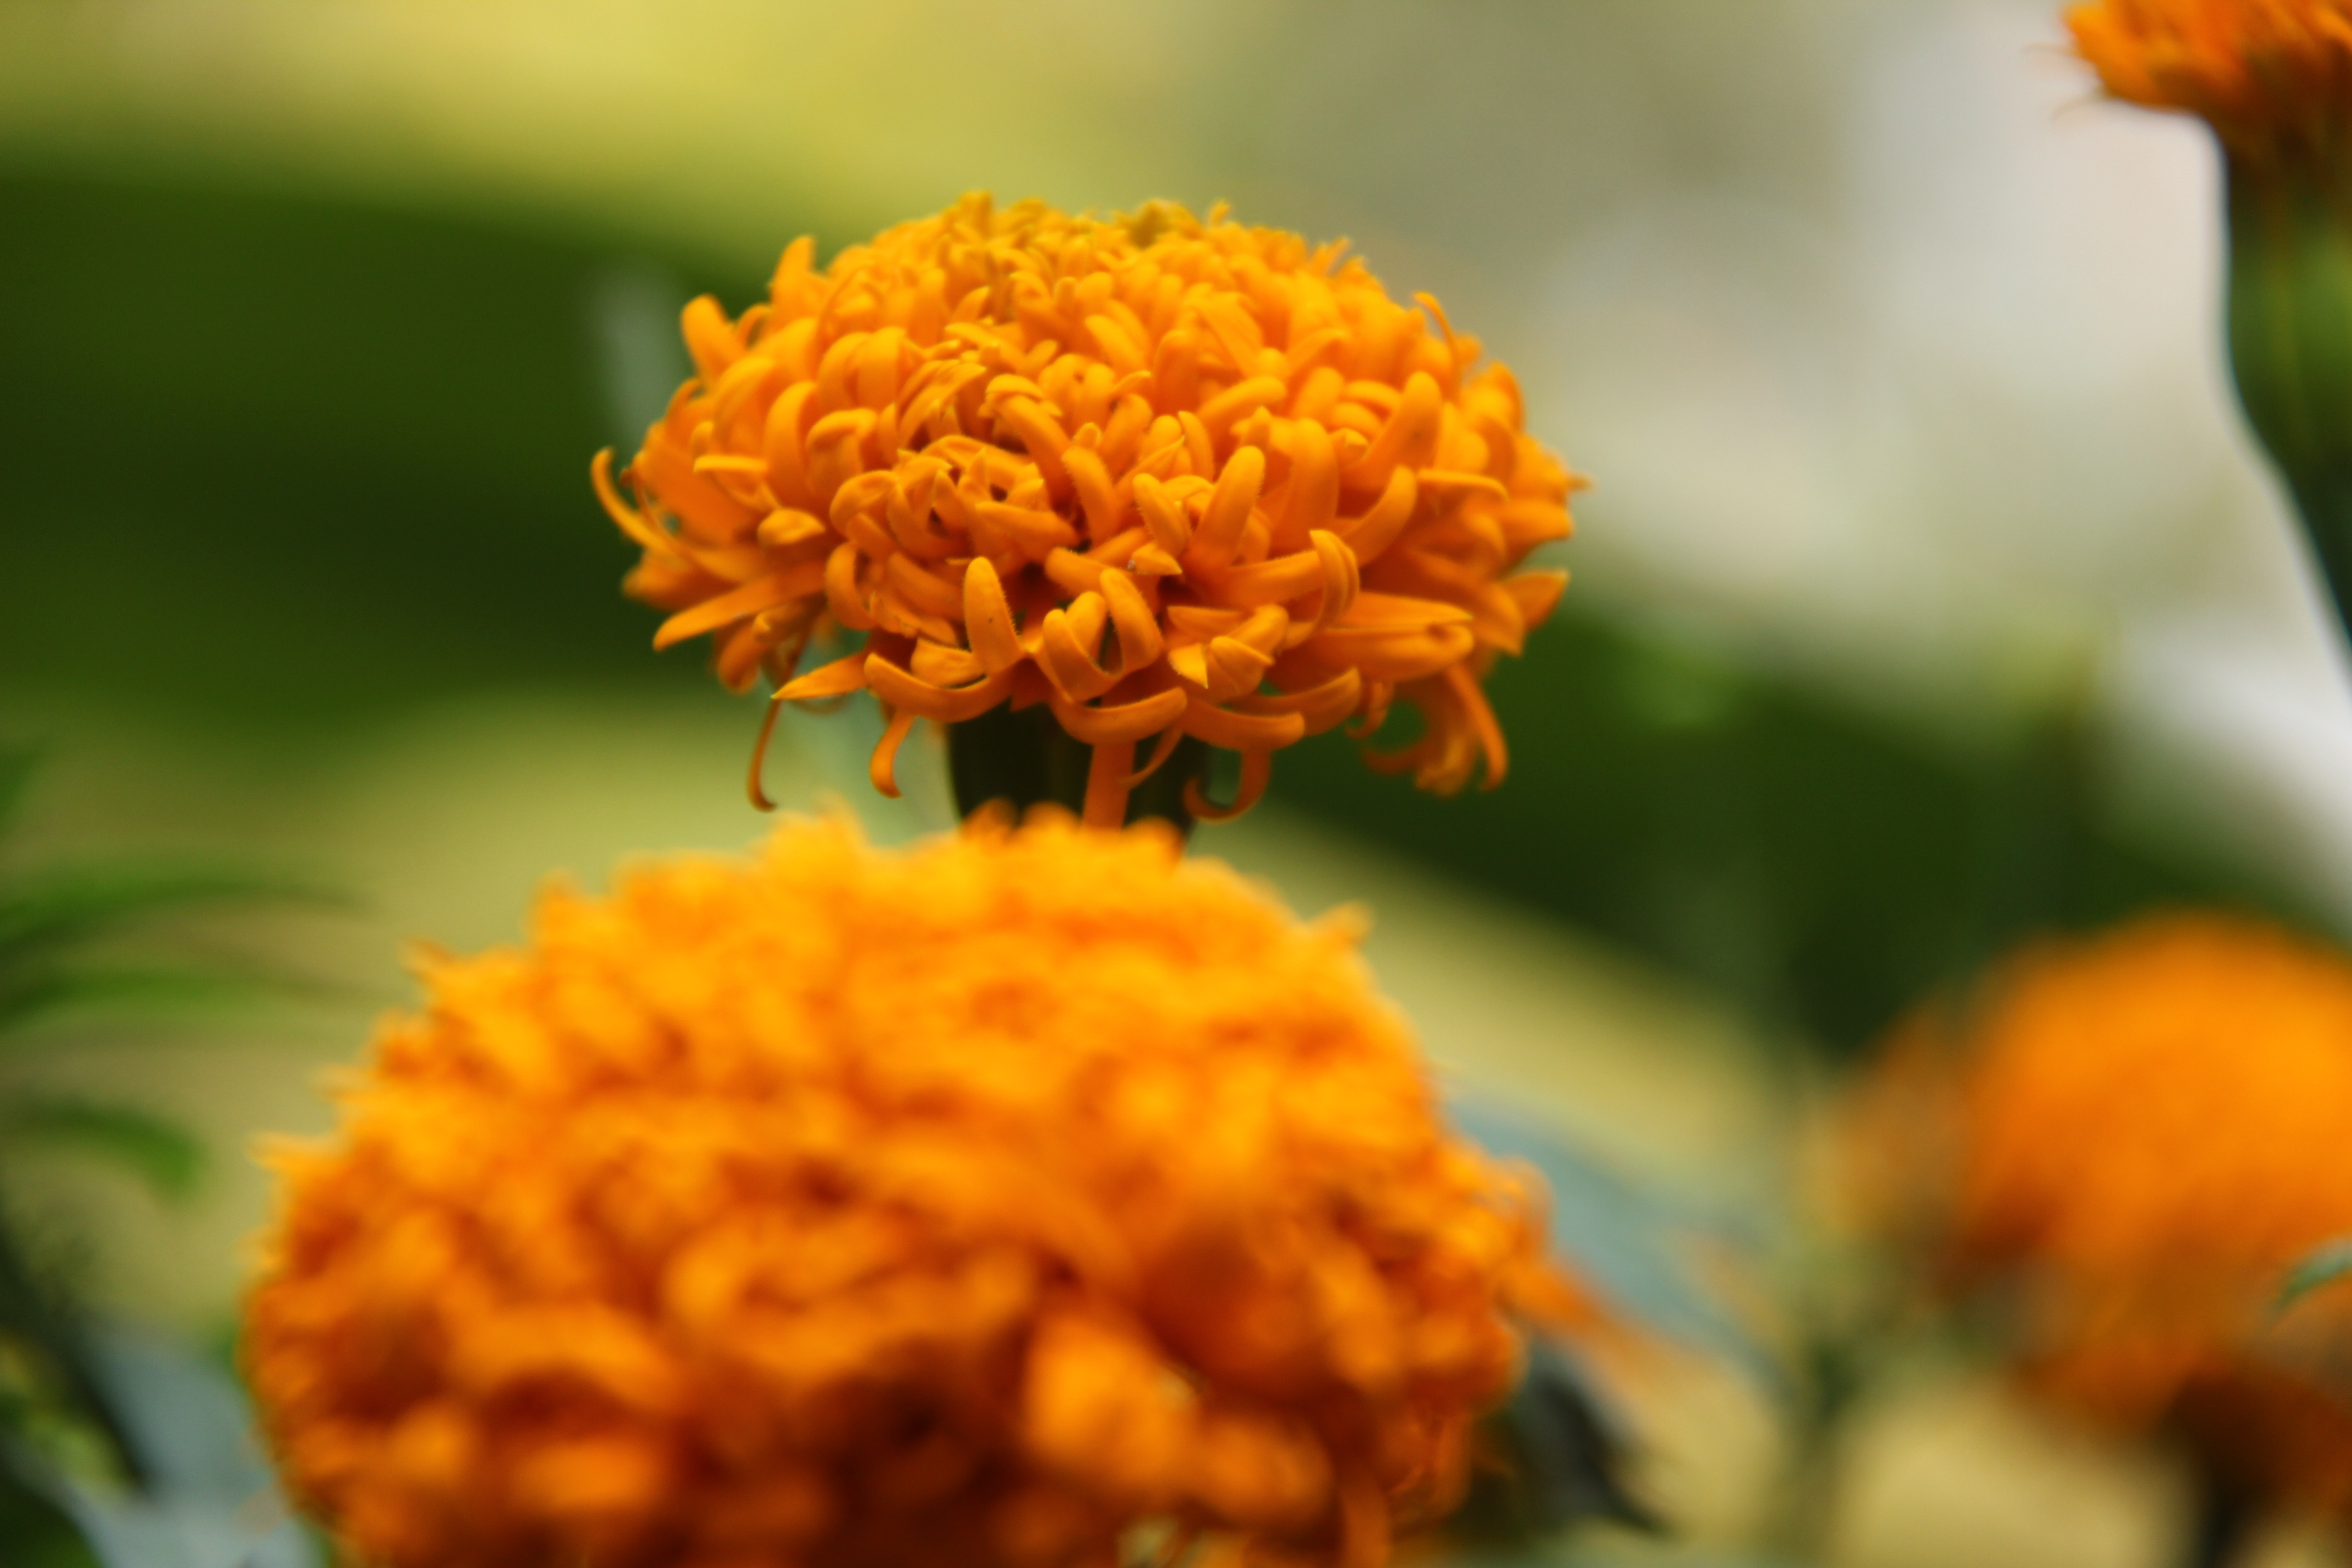 Pest Control for Marigolds in a Garden | Home Guides | SF Gate